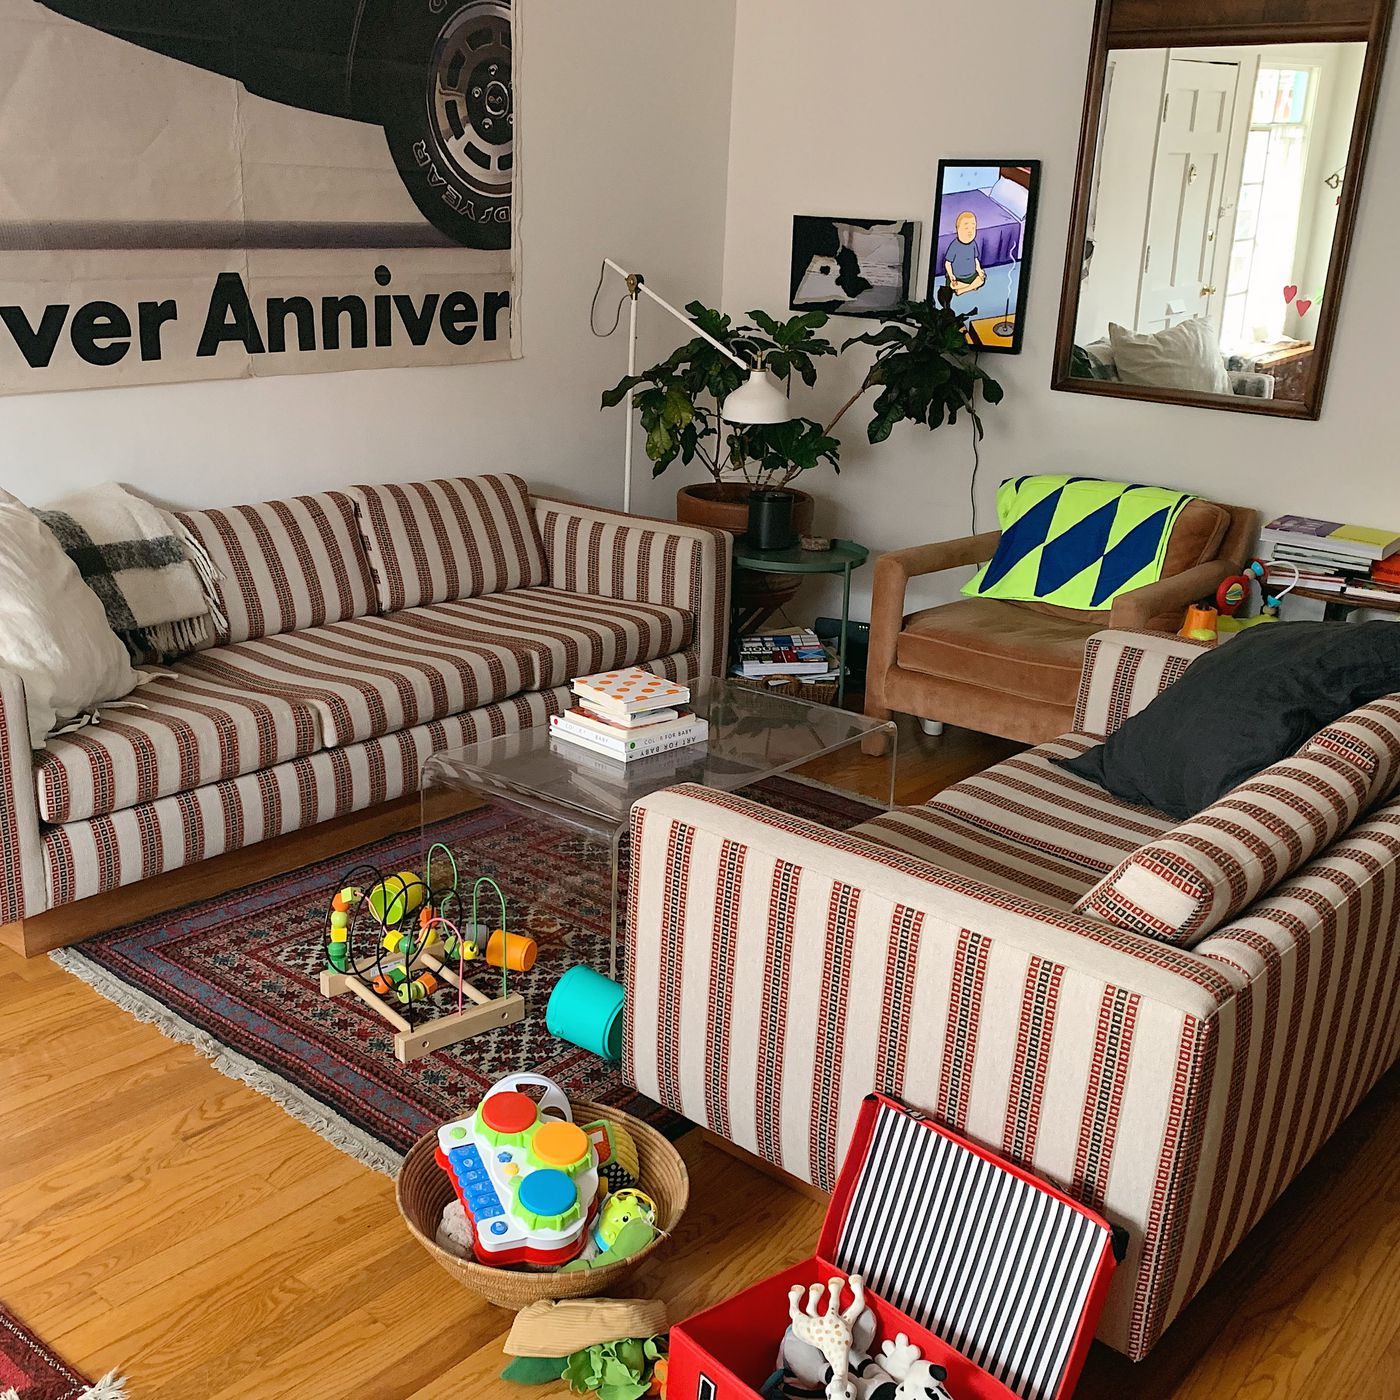 How To Reupholster A Couch On Budget